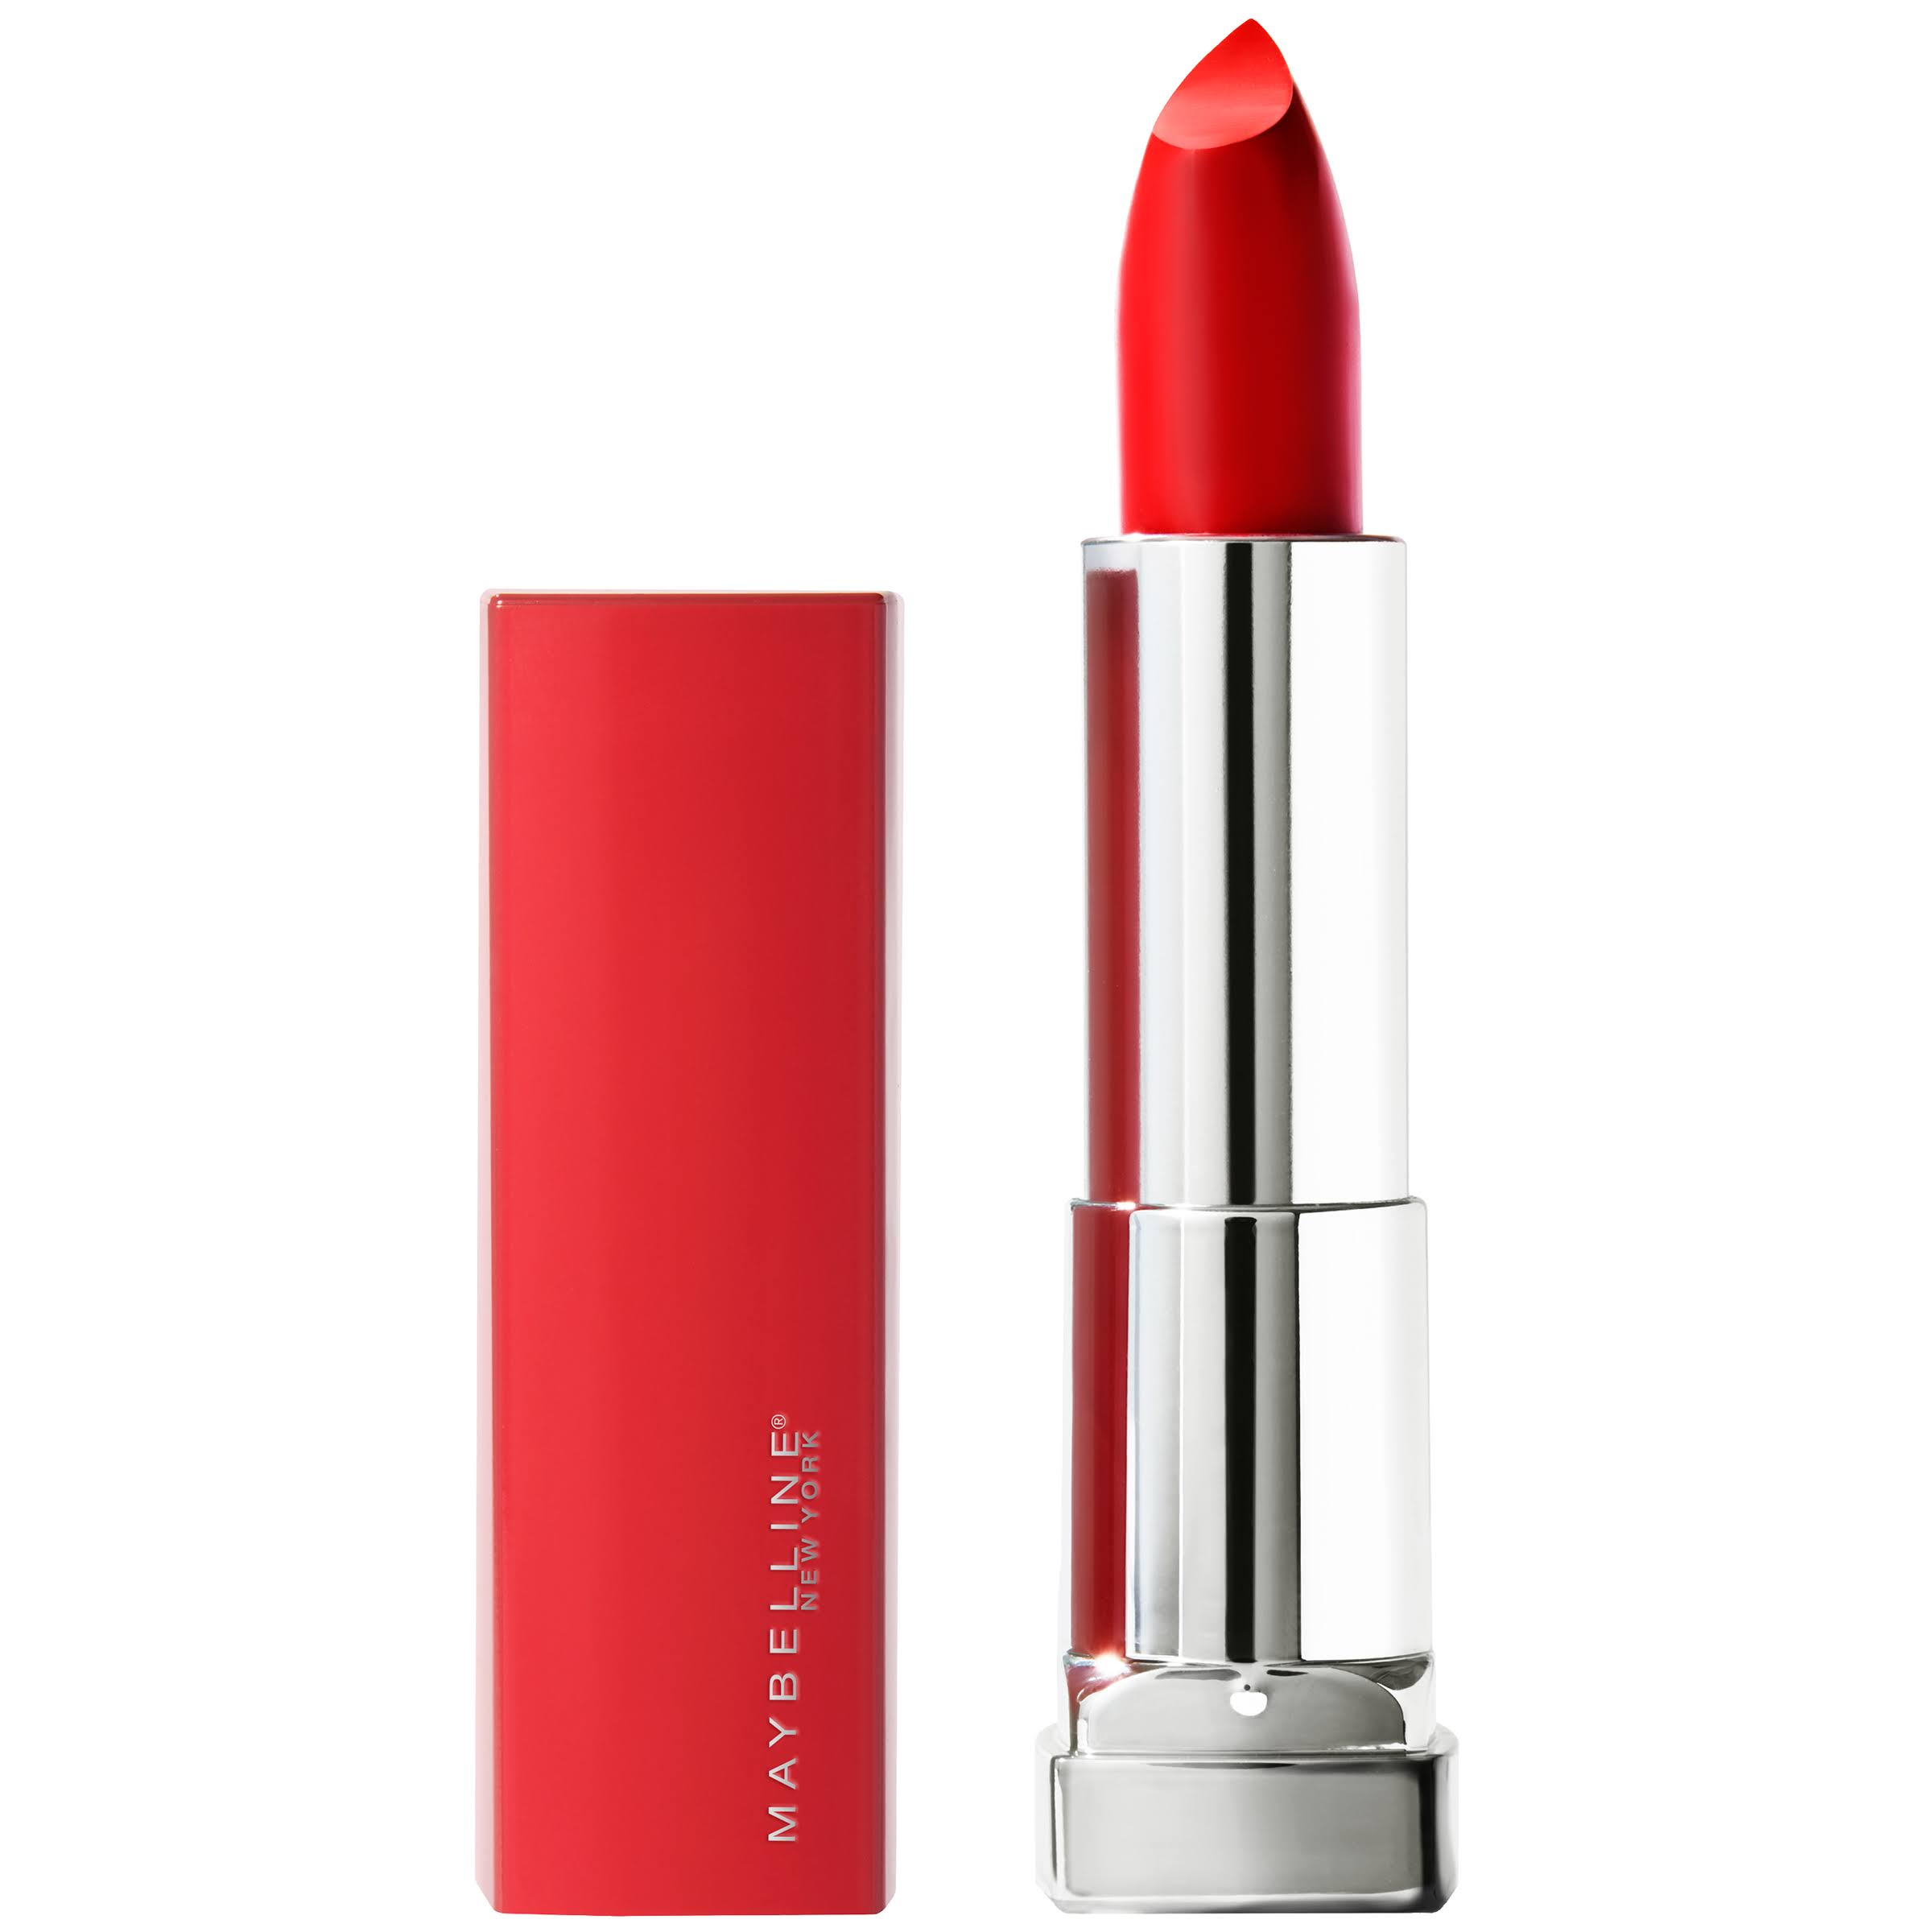 Maybelline ColorSensational Lipstick, Matte, Red for Me 382 - 0.15 oz